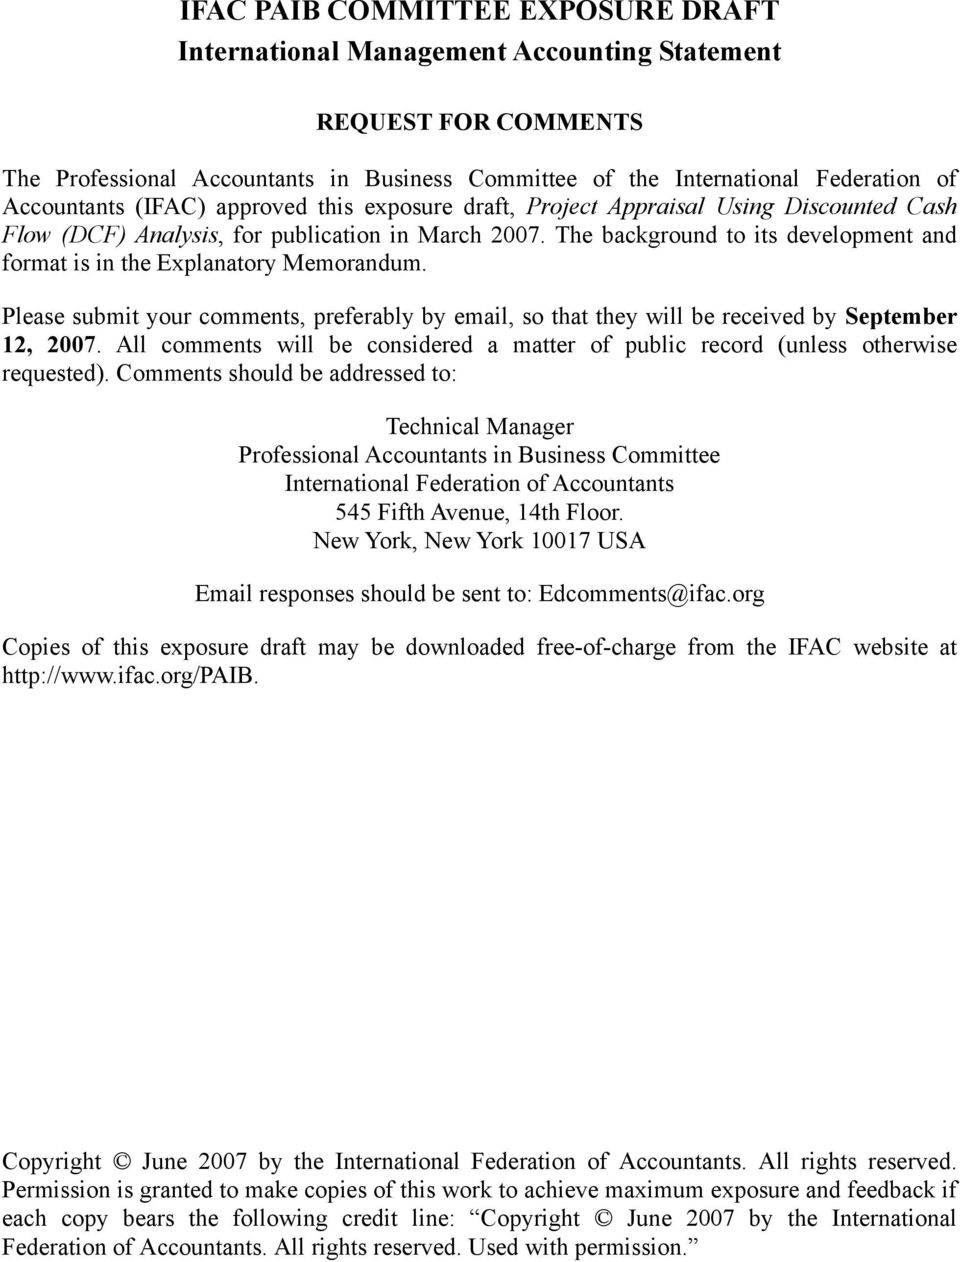 The background to its development and format is in the Explanatory Memorandum. Please submit your comments, preferably by email, so that they will be received by September 12, 2007.